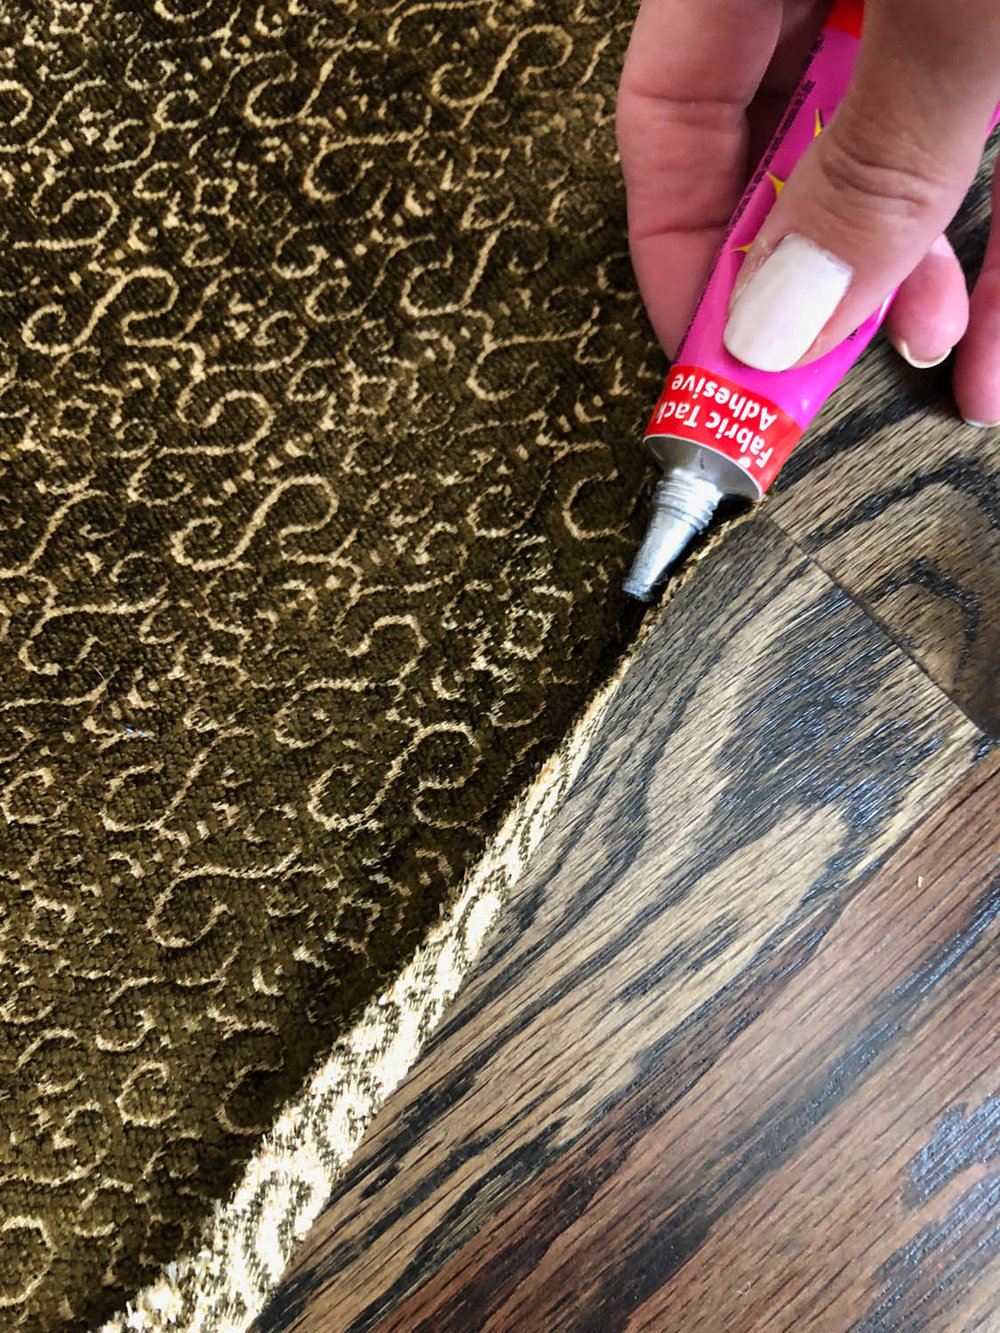 applying super tite fabric glue to pressed under edges of upholstery fabric